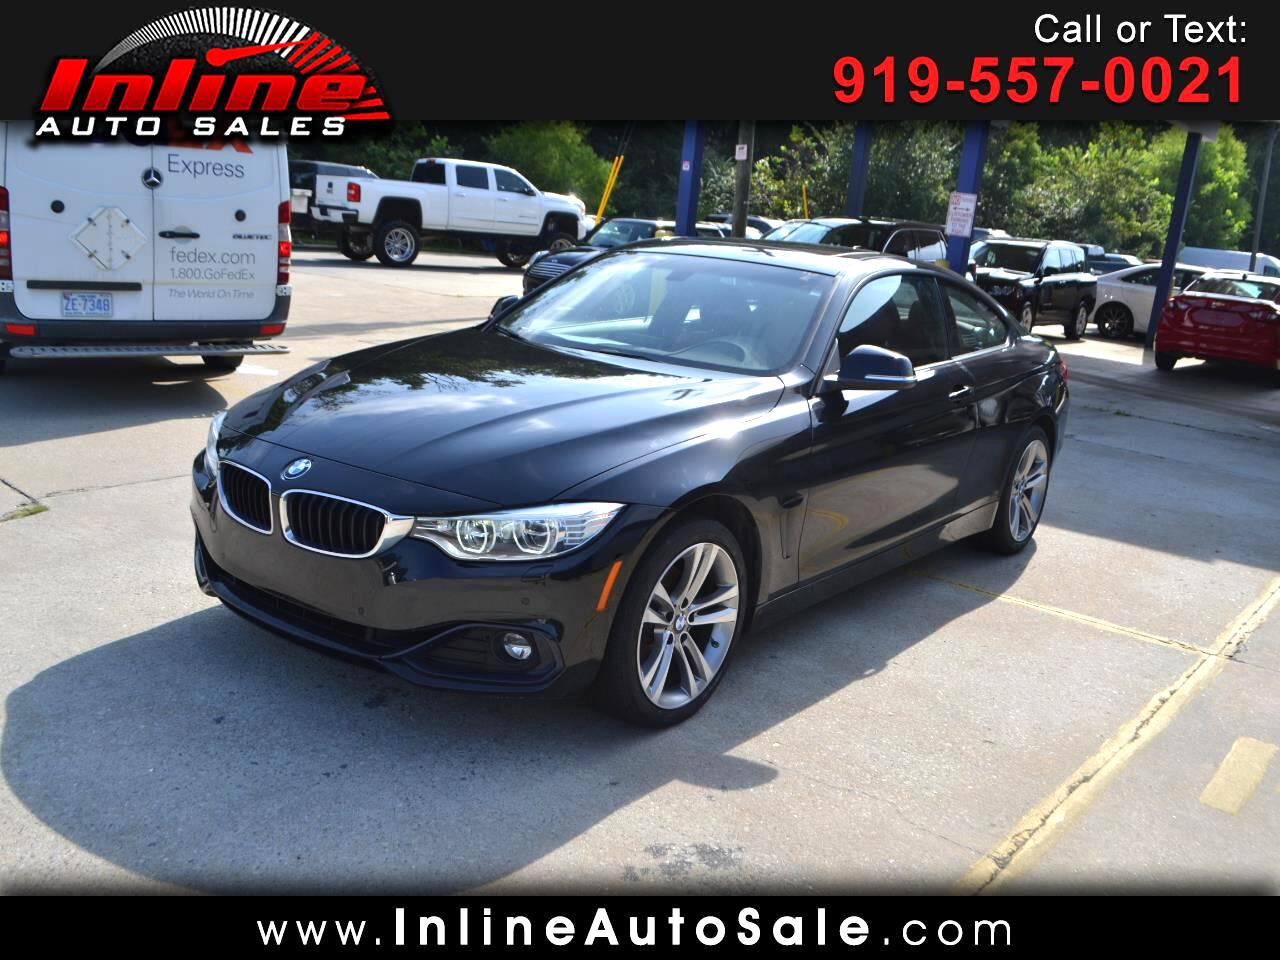 BMW 4 Series 2dr Cpe 428i xDrive AWD 2014